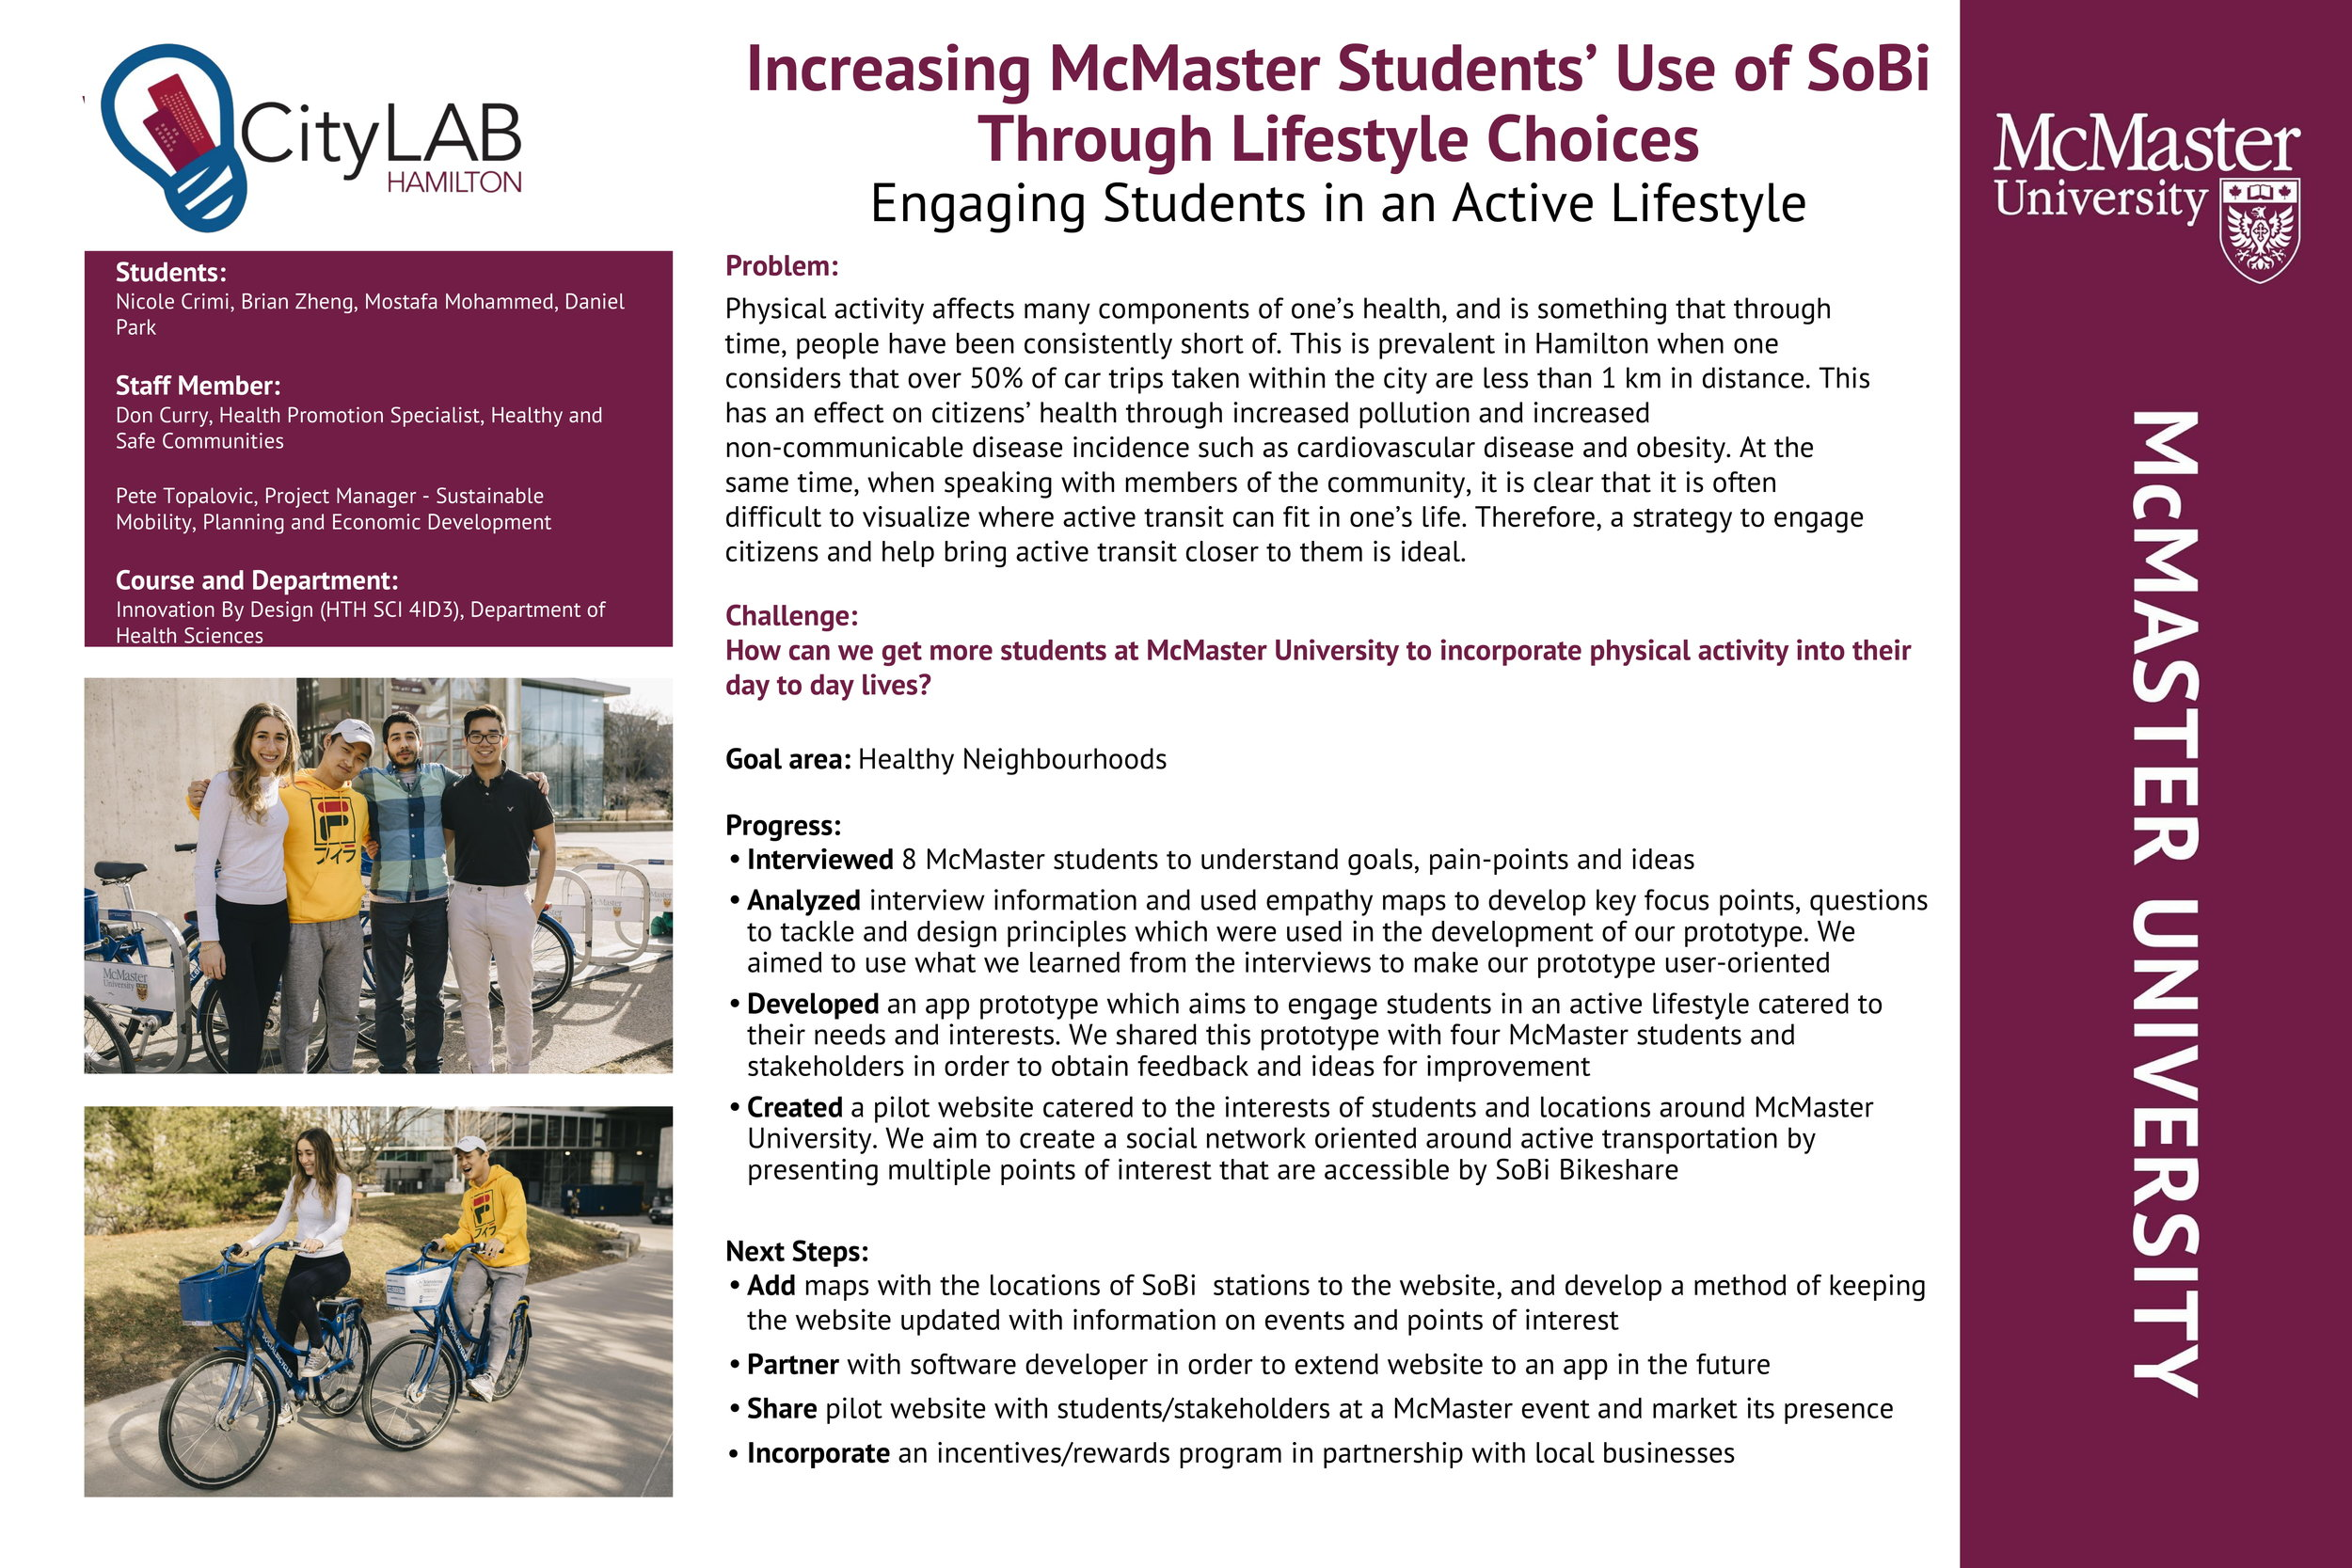 Increasing McMaster Students_ Use of Sobi Through Lifestyle Choices (2)-1.jpg